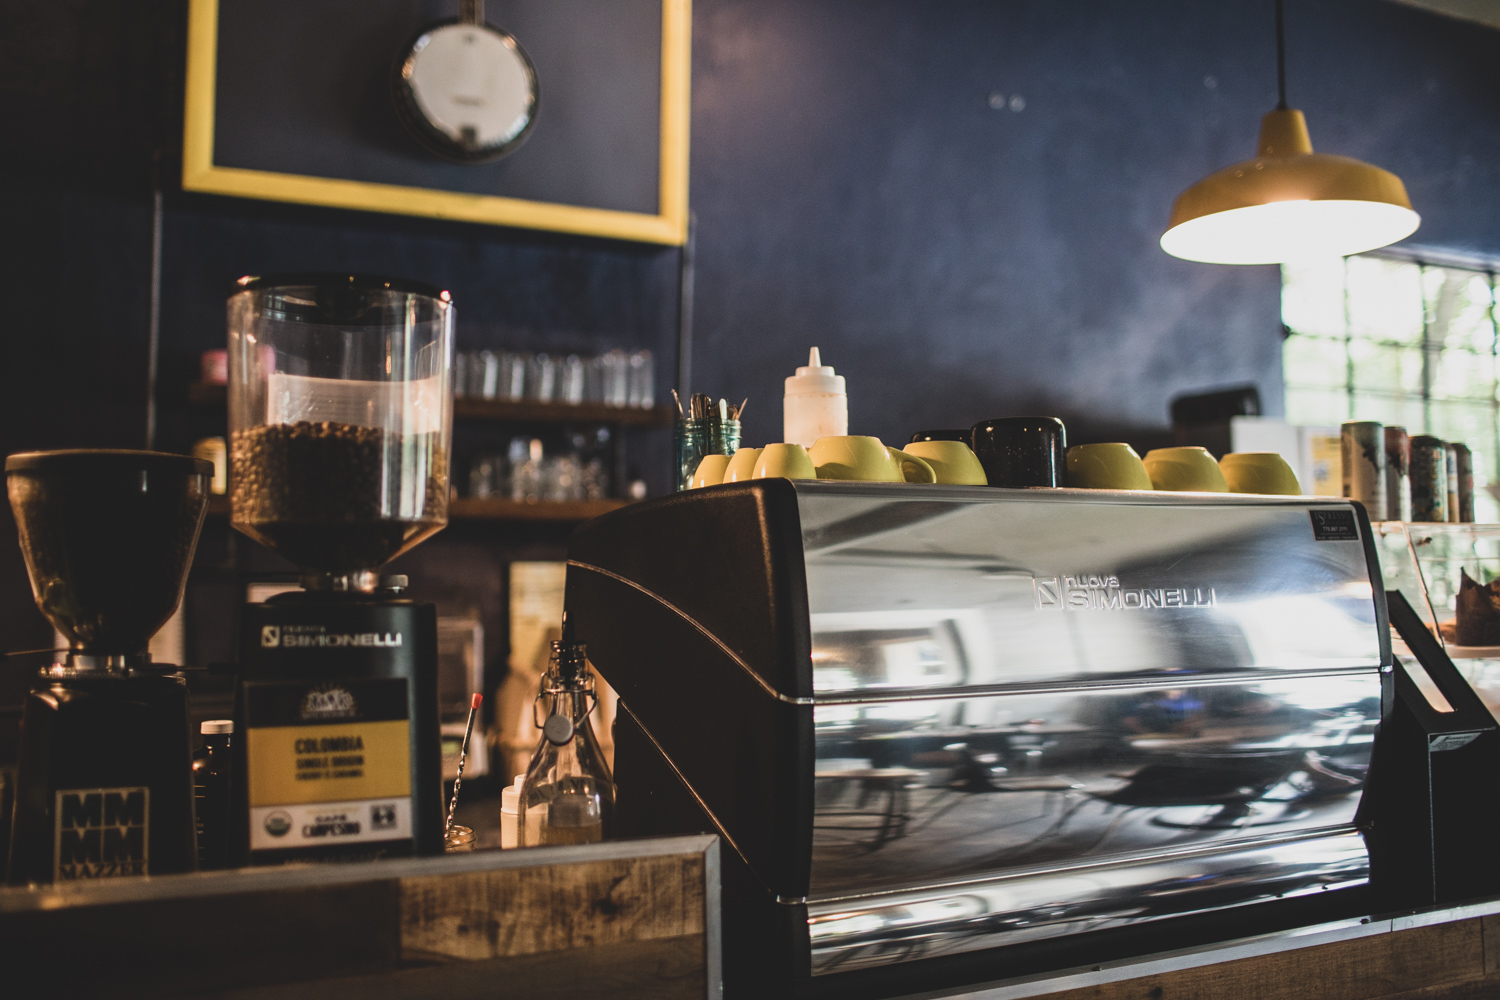 """The Nuova Simonelli espresso machine is one of the """"tools of the trade"""" at  Banjo Coffee ."""